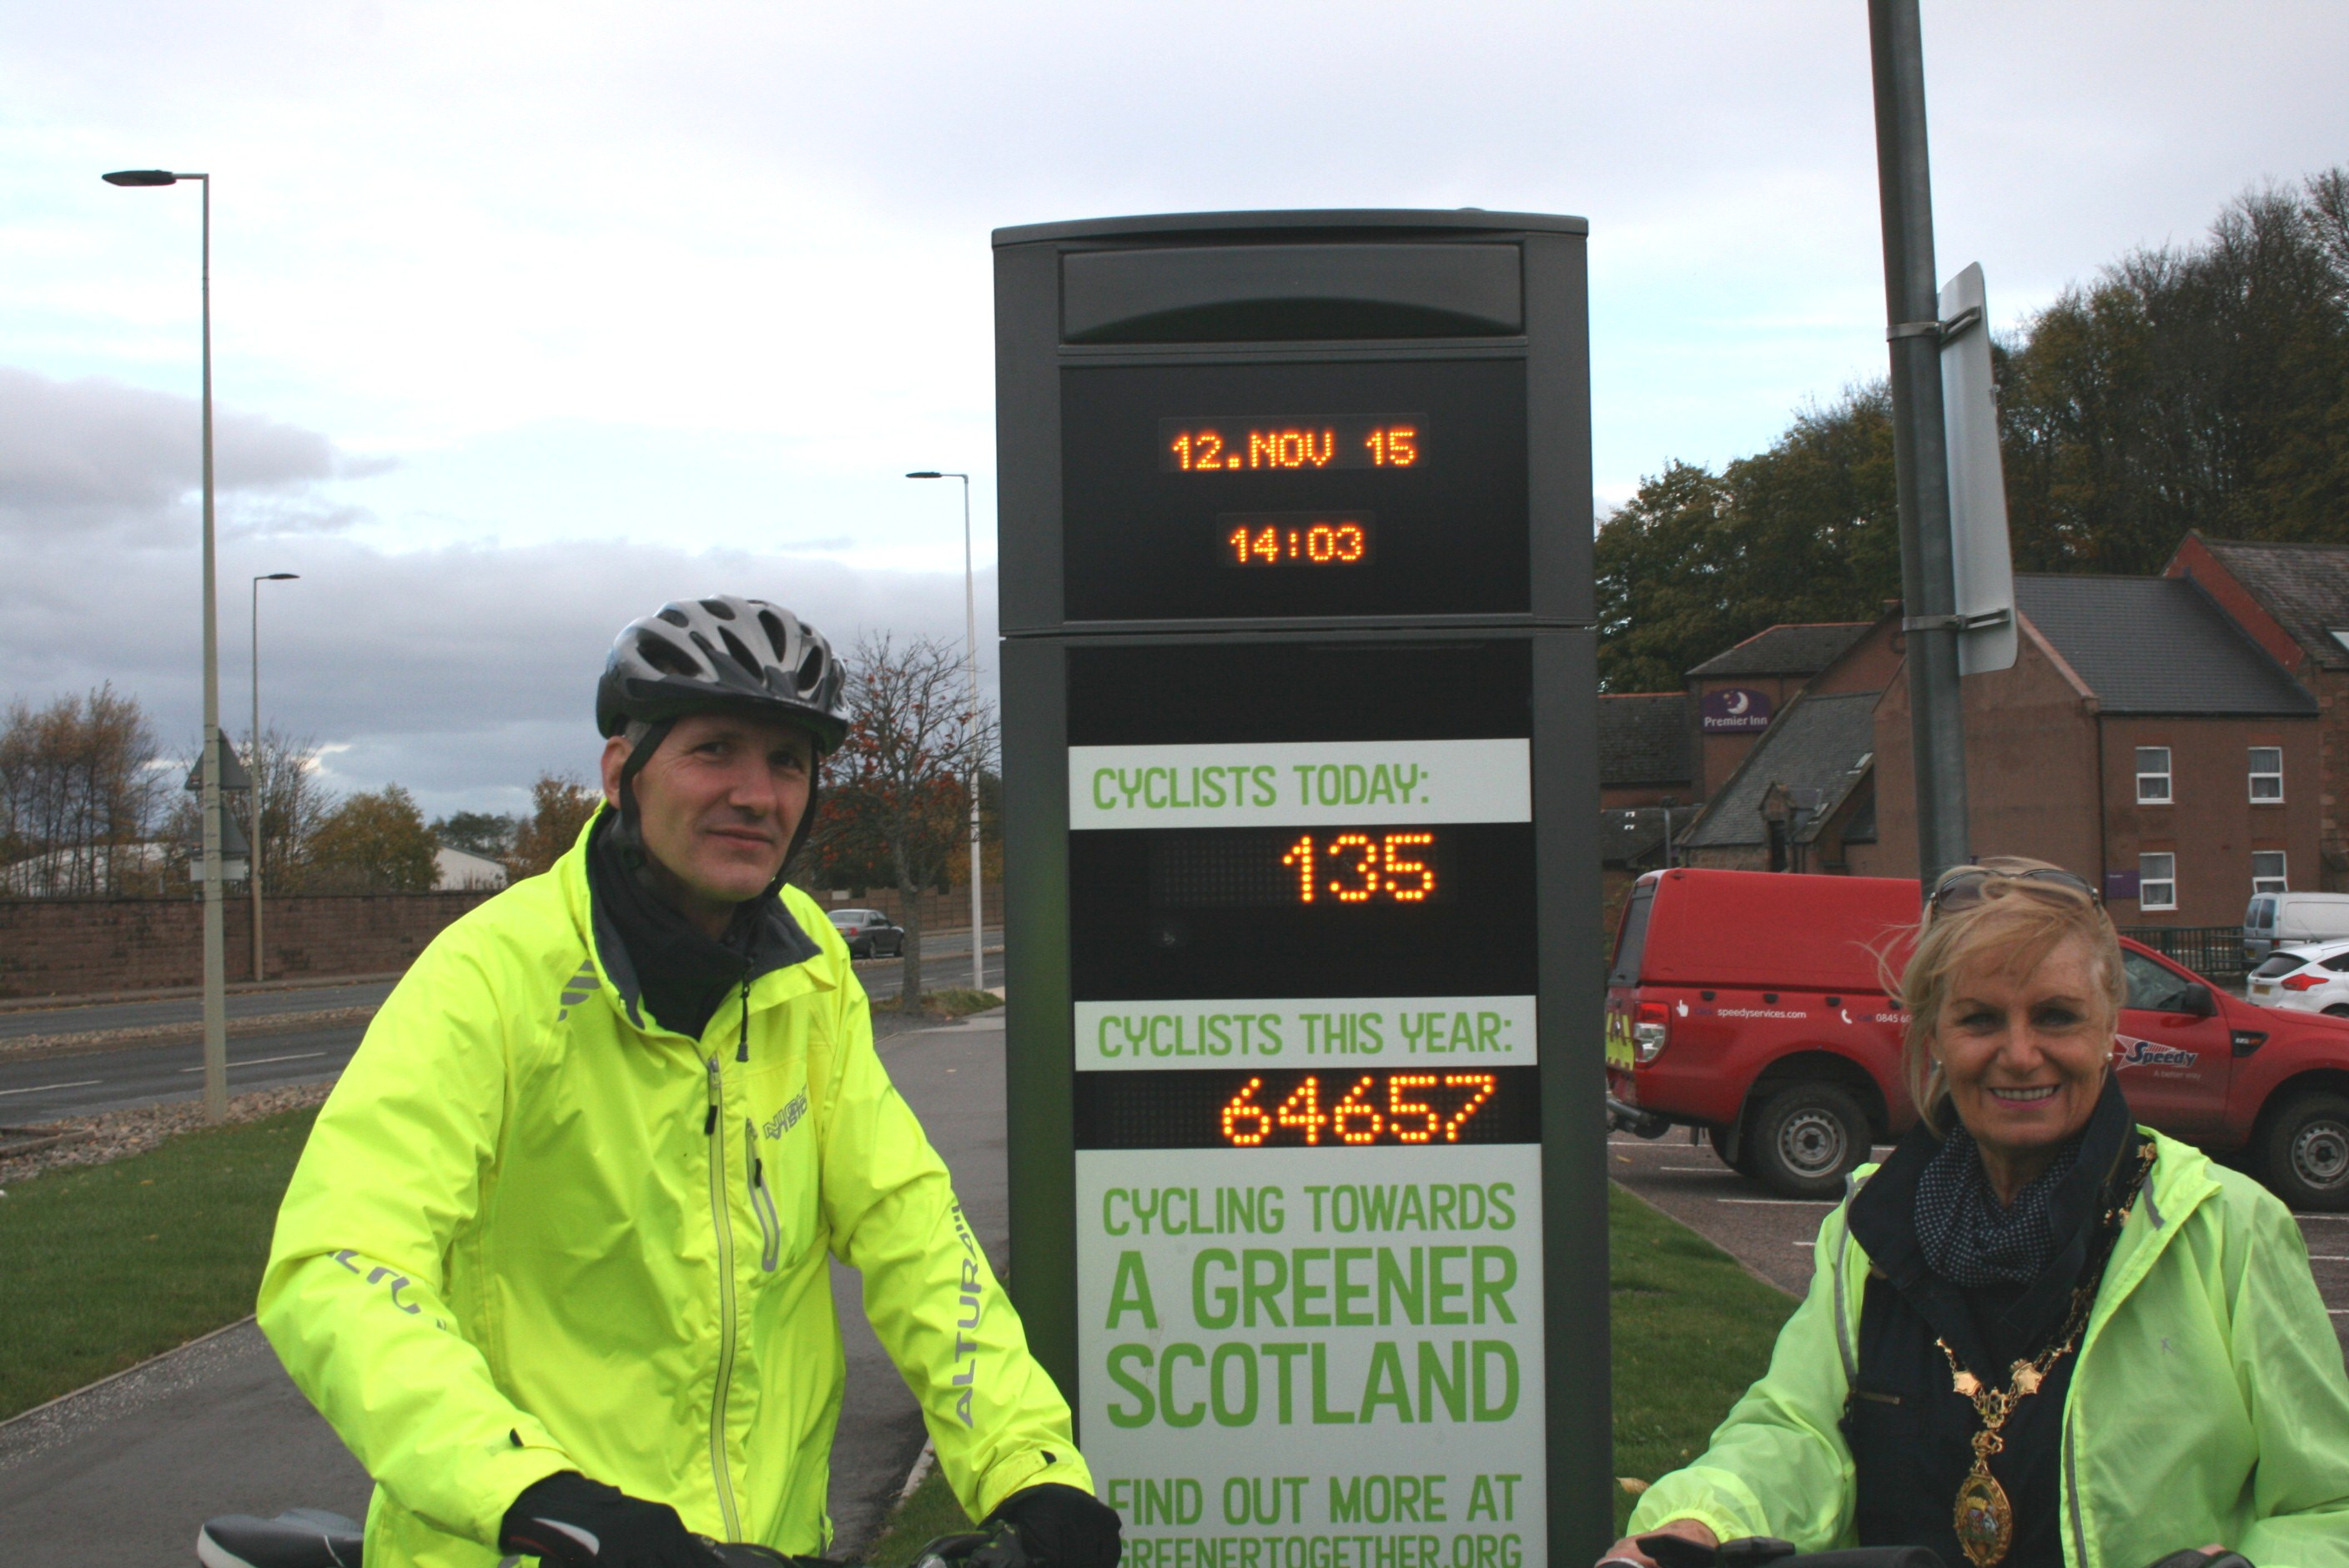 PHOTO OF CYCLE COUNTER